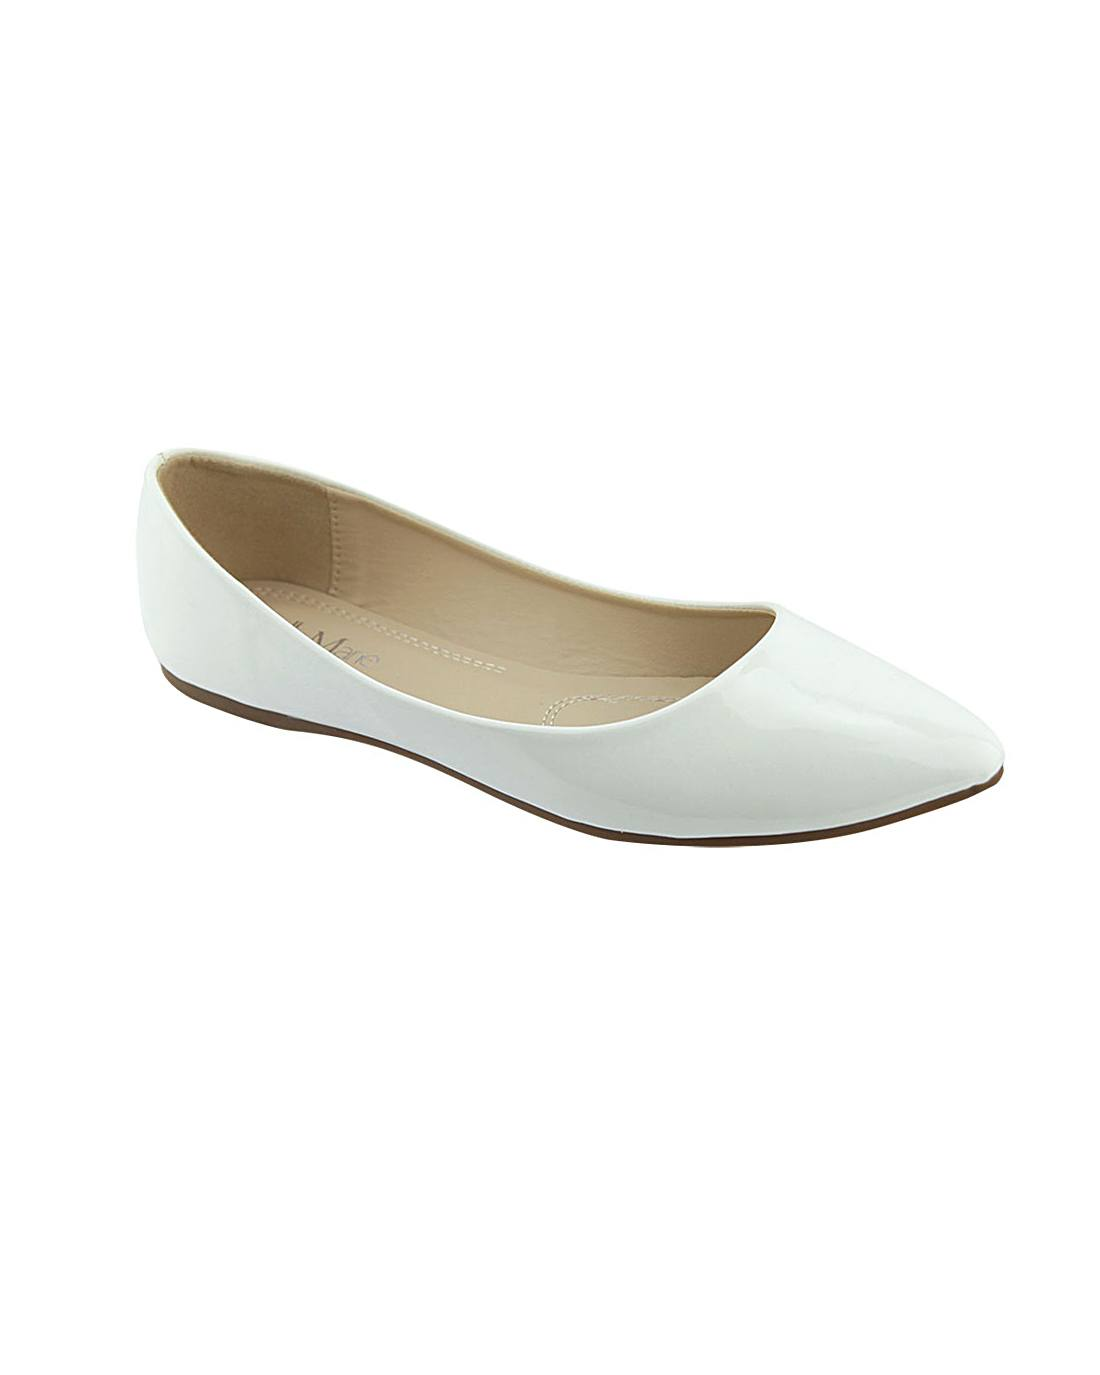 Pointed Toe Glossy Texture Flats-5.5-MY UPSCALE STORE